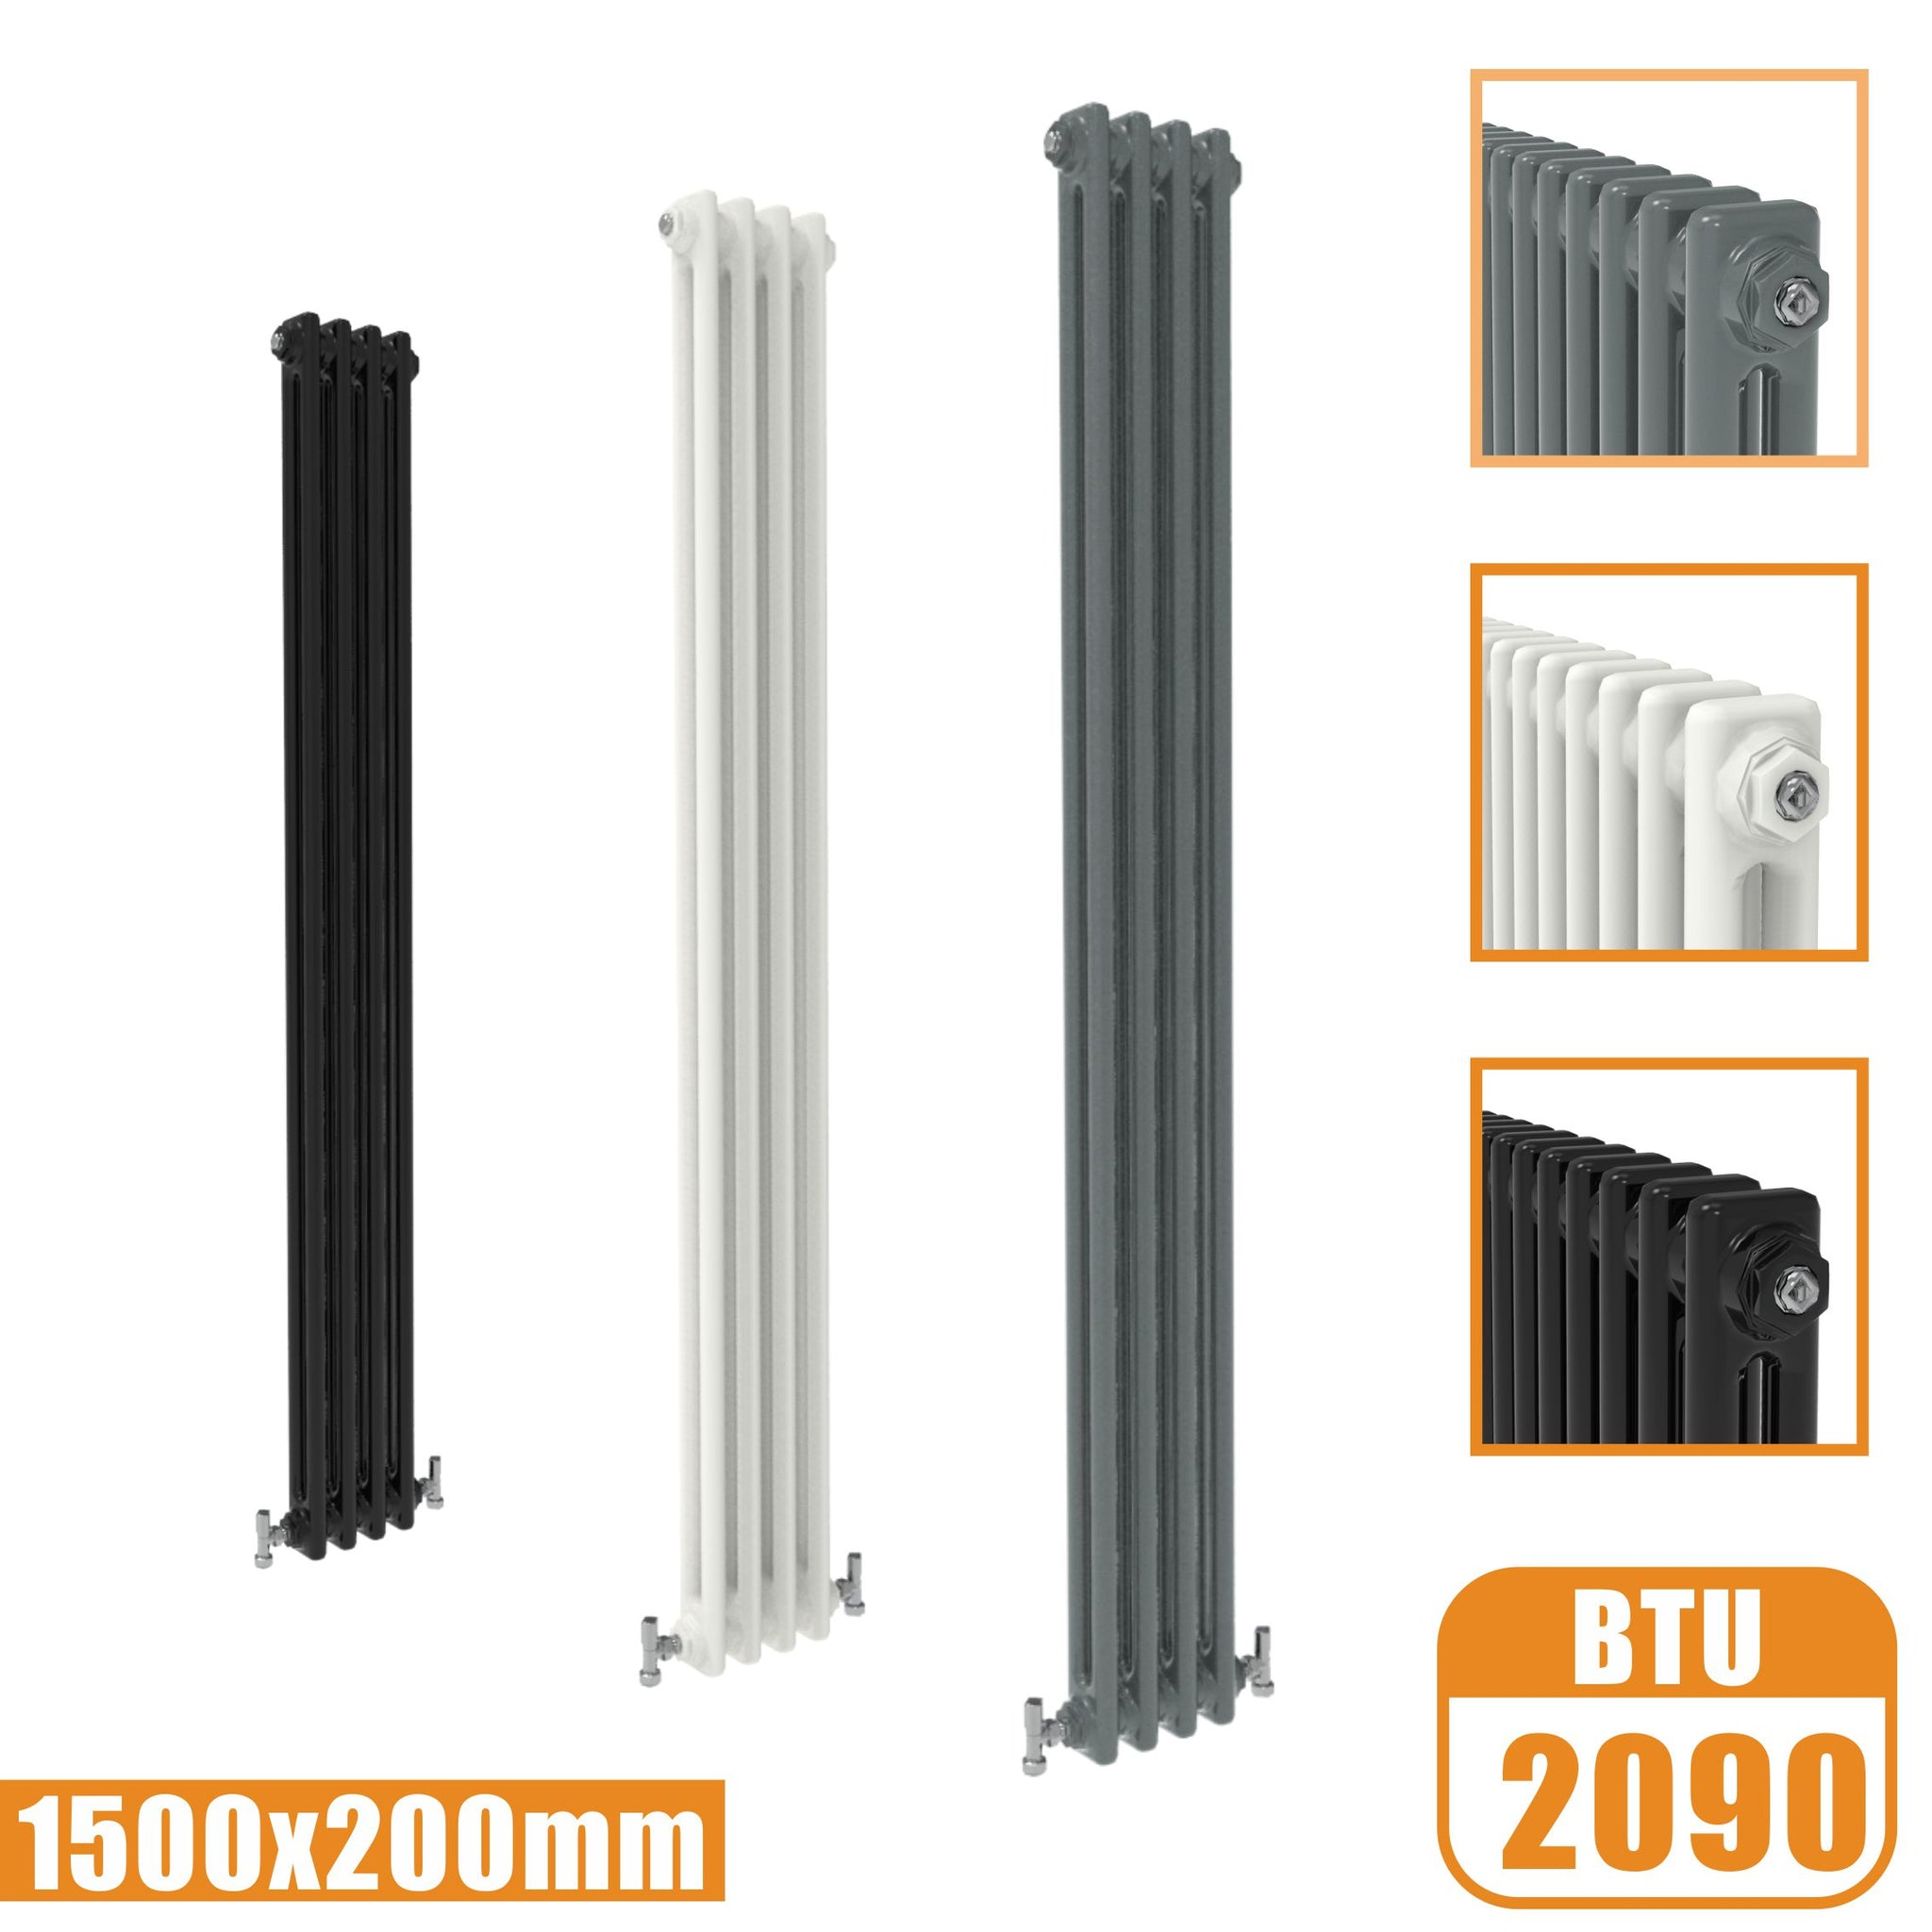 2Column Traditional Cast Iron Style 1500x200 Radiator Vertical Tall Vintage AICA Rads